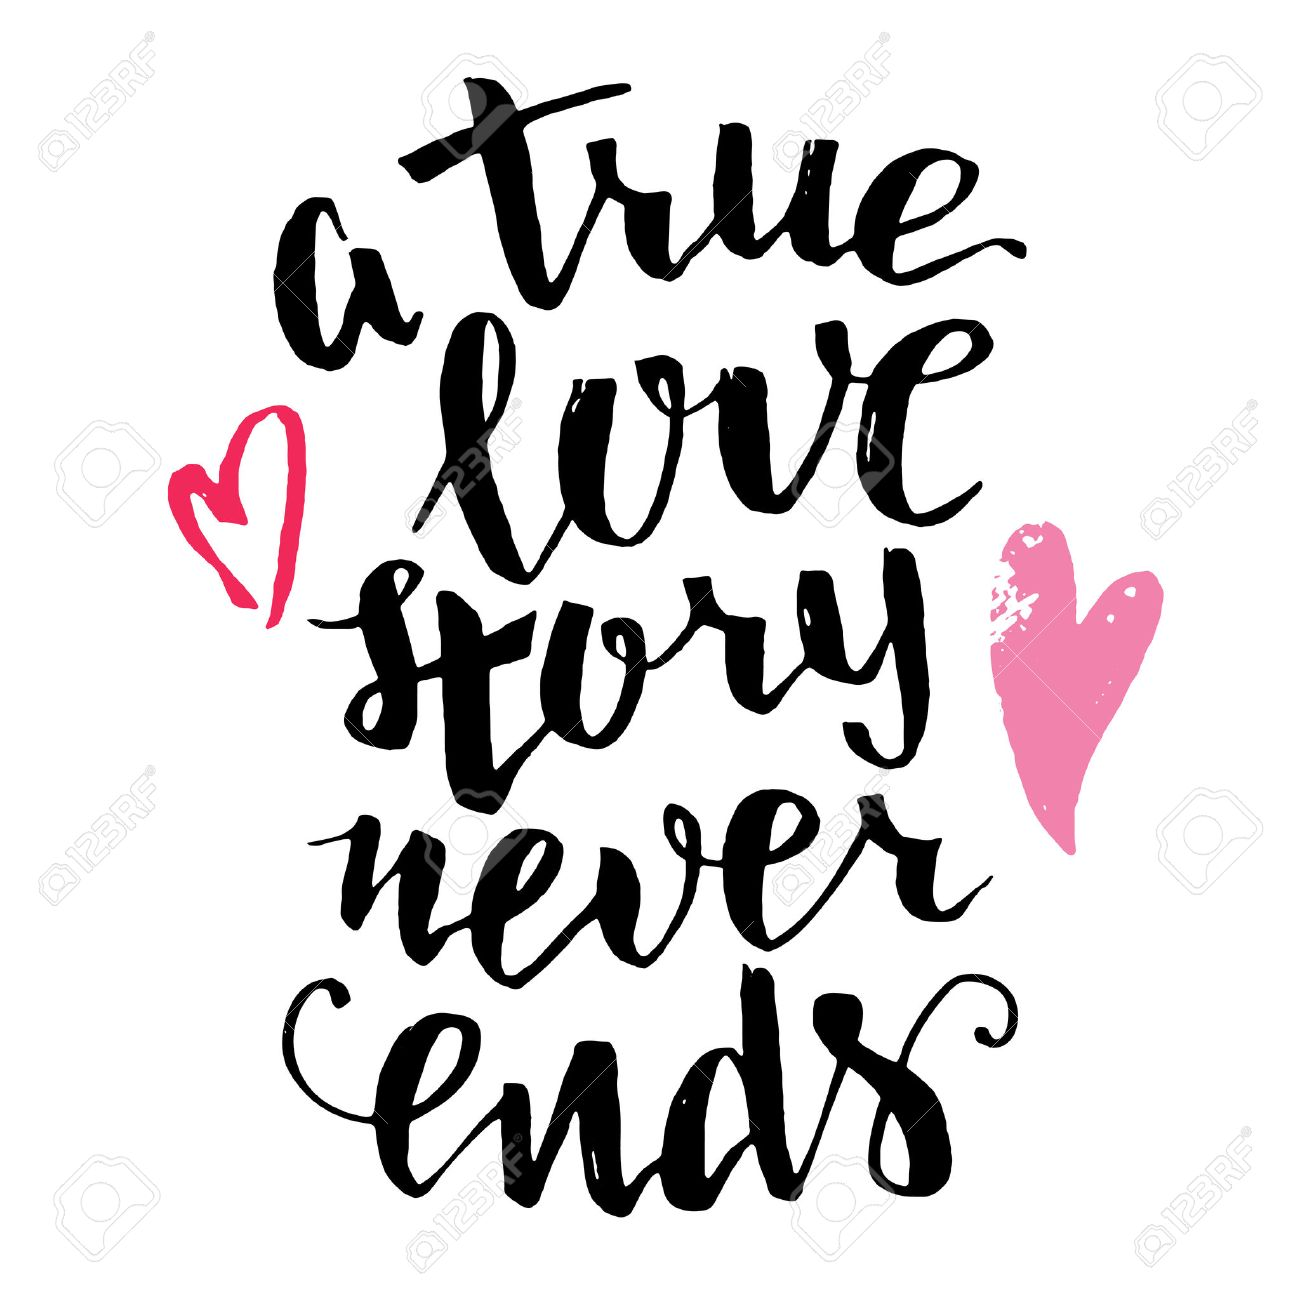 A true love story never ends. Brush calligraphy, handwritten text isolated on white background for Valentine's day card, wedding card, t-shirt or poster - 50513029